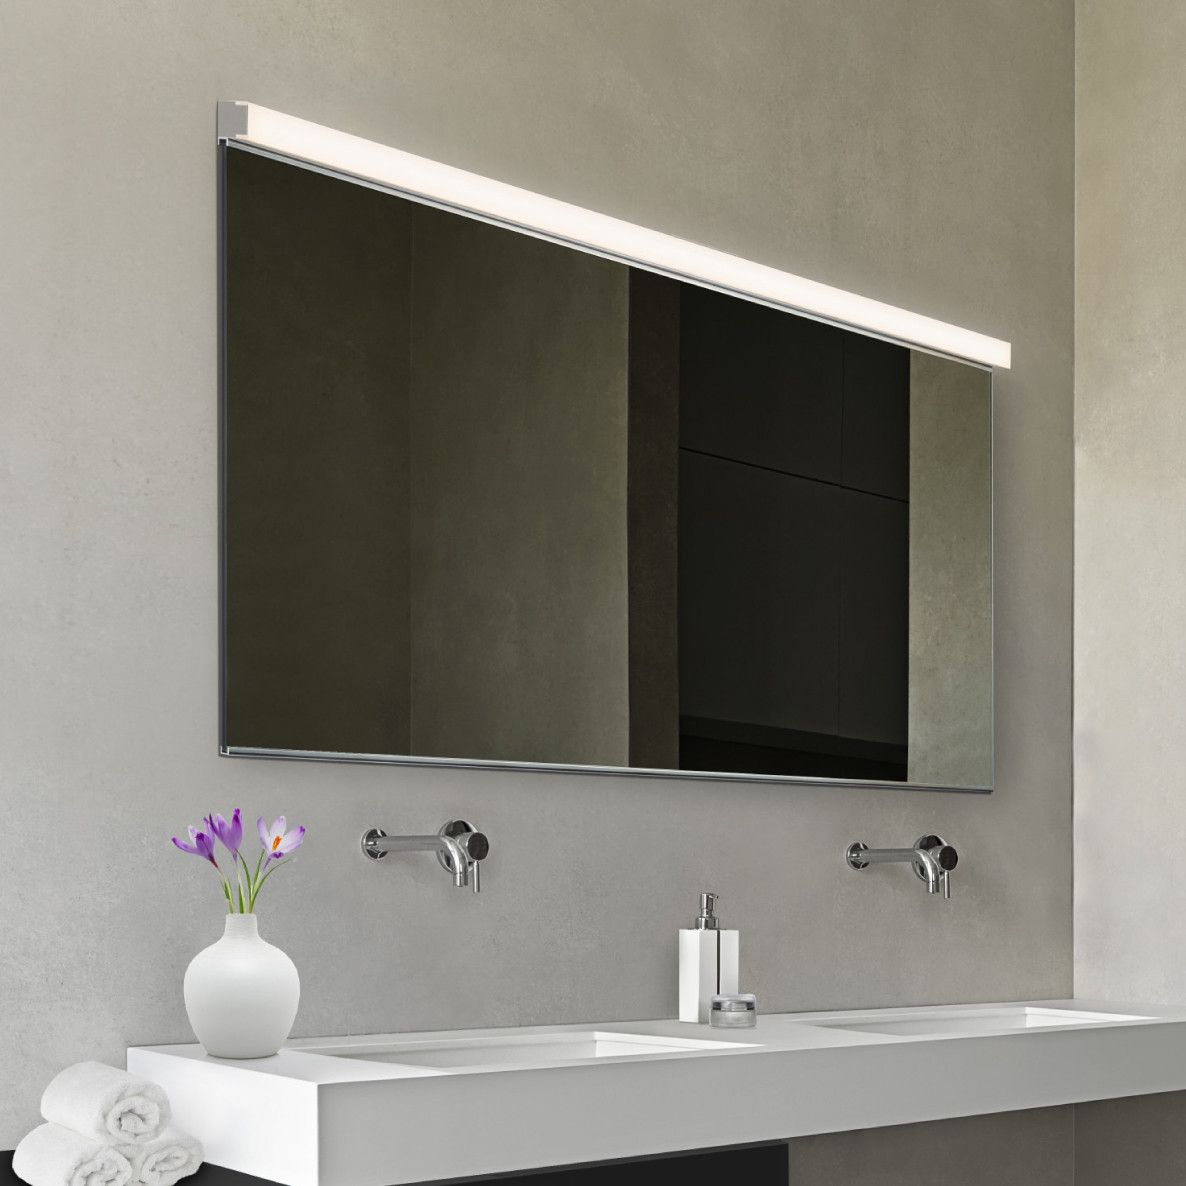 Bathroom Lighting Brands led slim 1-light bath bar | products | pinterest | bath, bar and